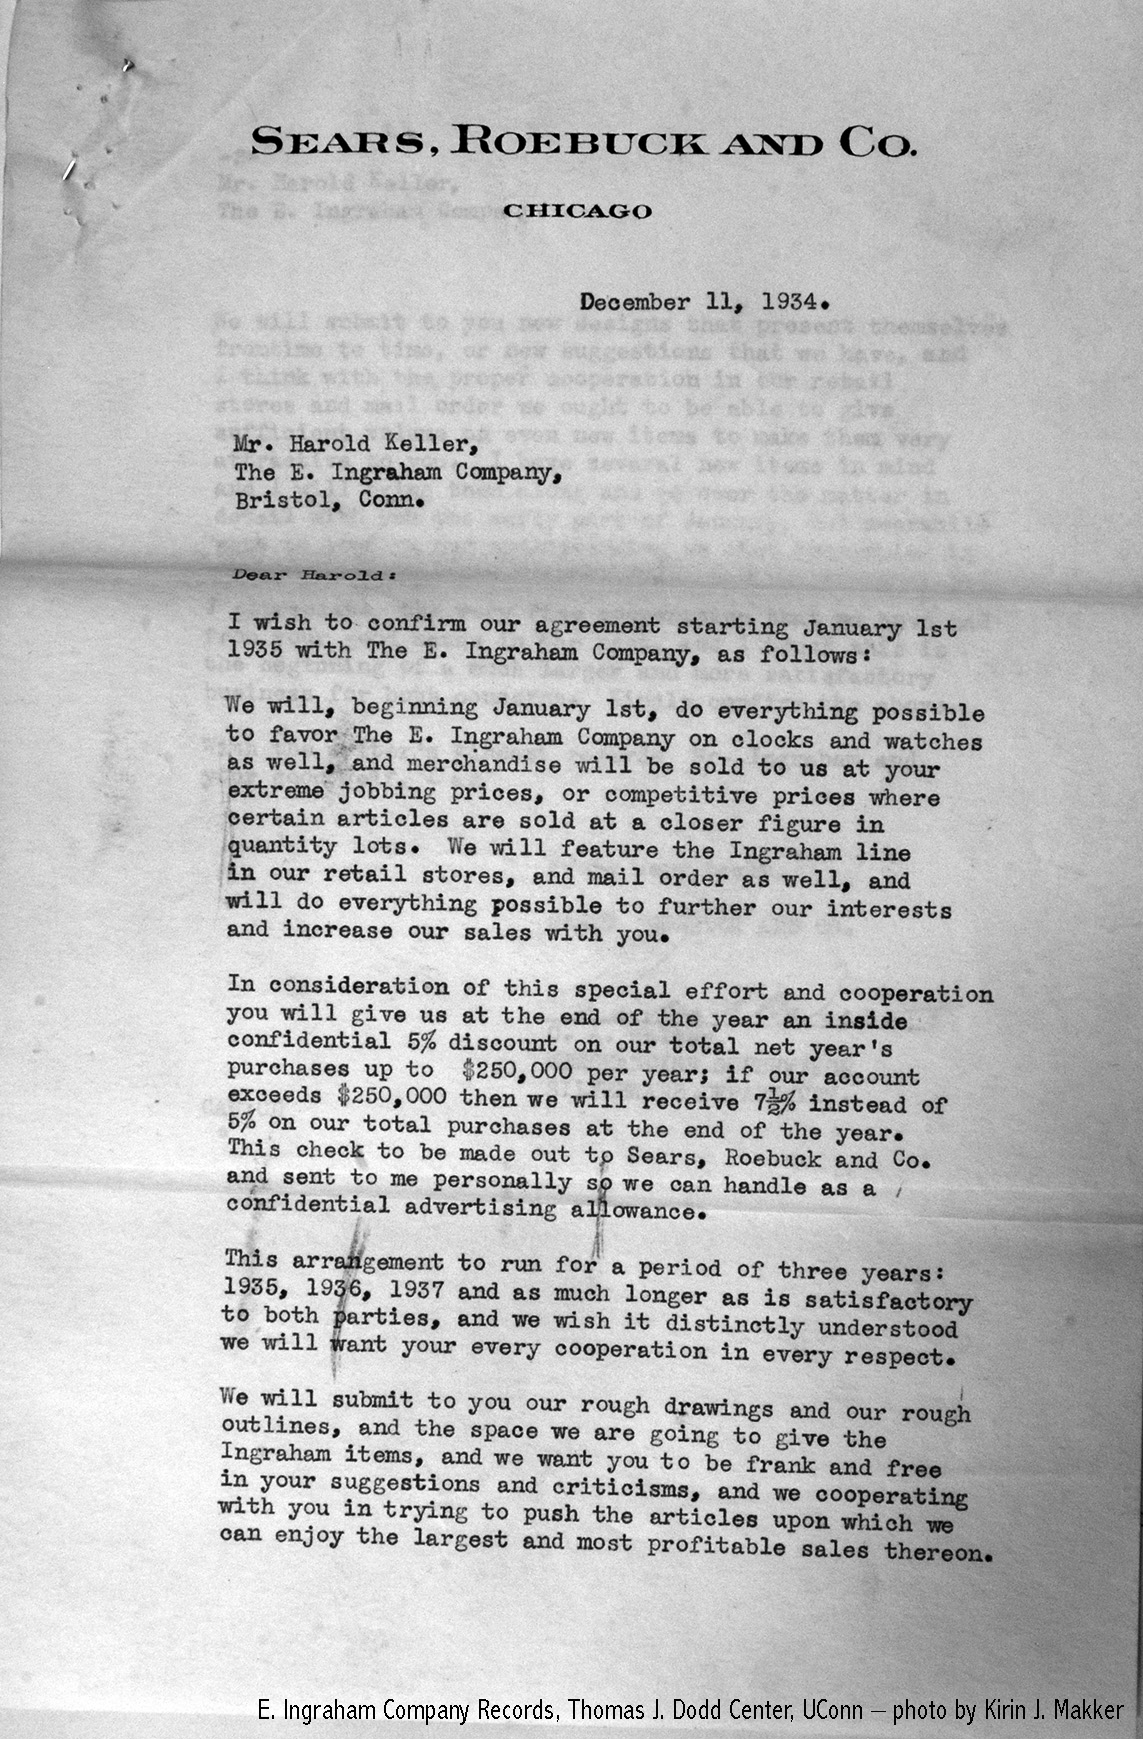 Letter to Harold Keller of E. Ingraham Company from the Sears, Roebuck and Company, December 11, 1934